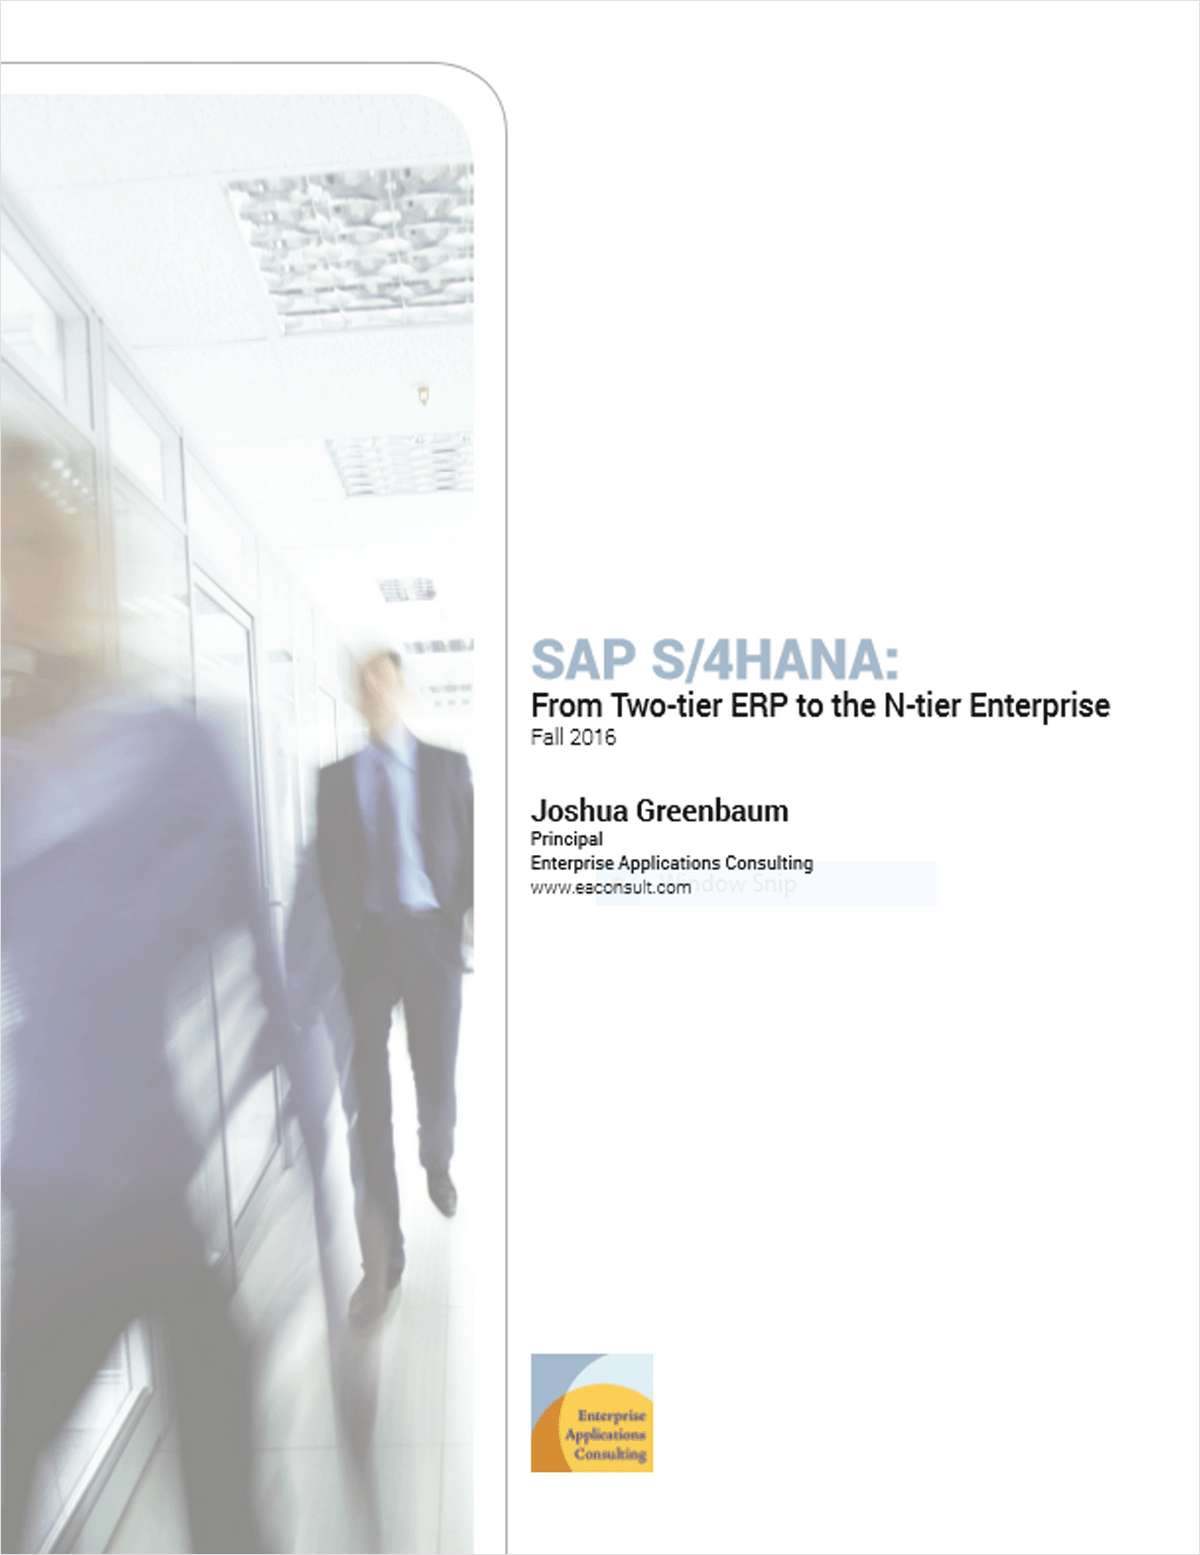 sap s 4hana from two tier erp to the n tier enterprise free sap